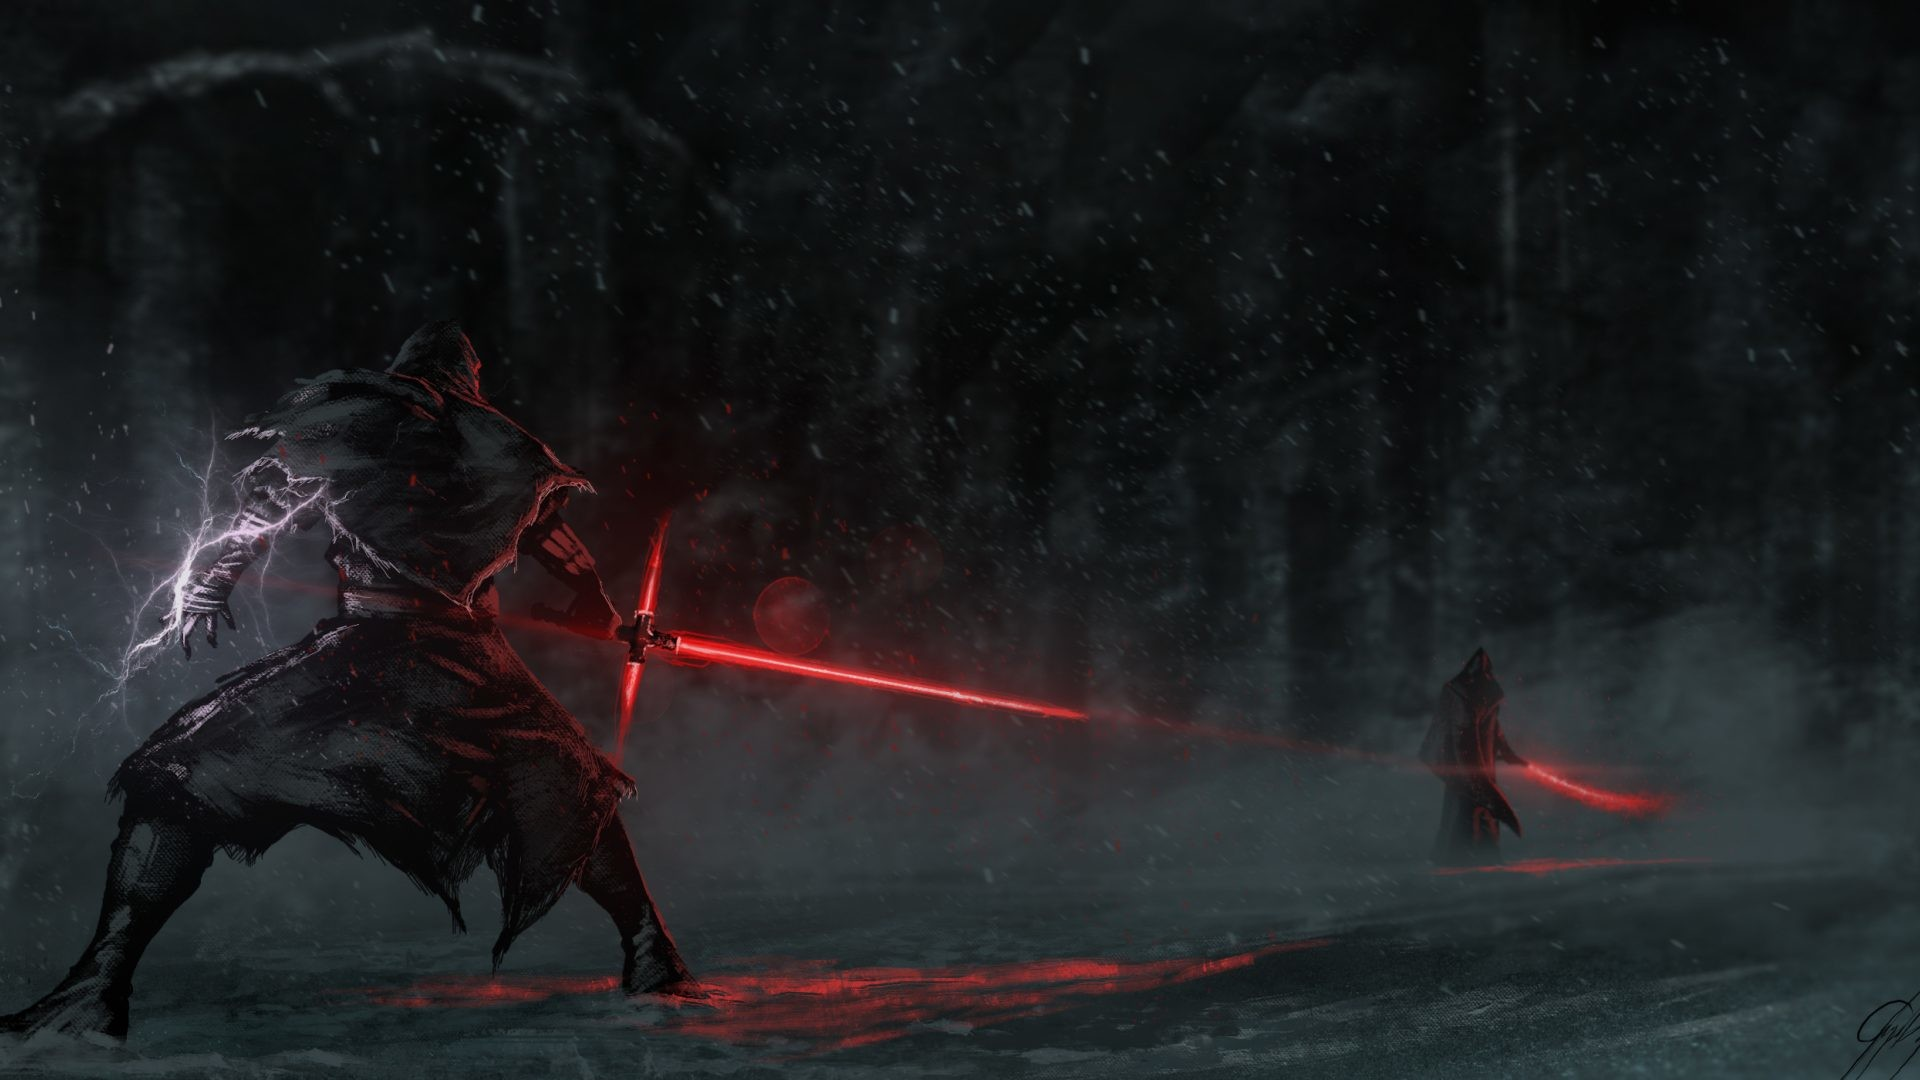 X Dark Sith Lord Wallpaper  C B Download  C B Darth